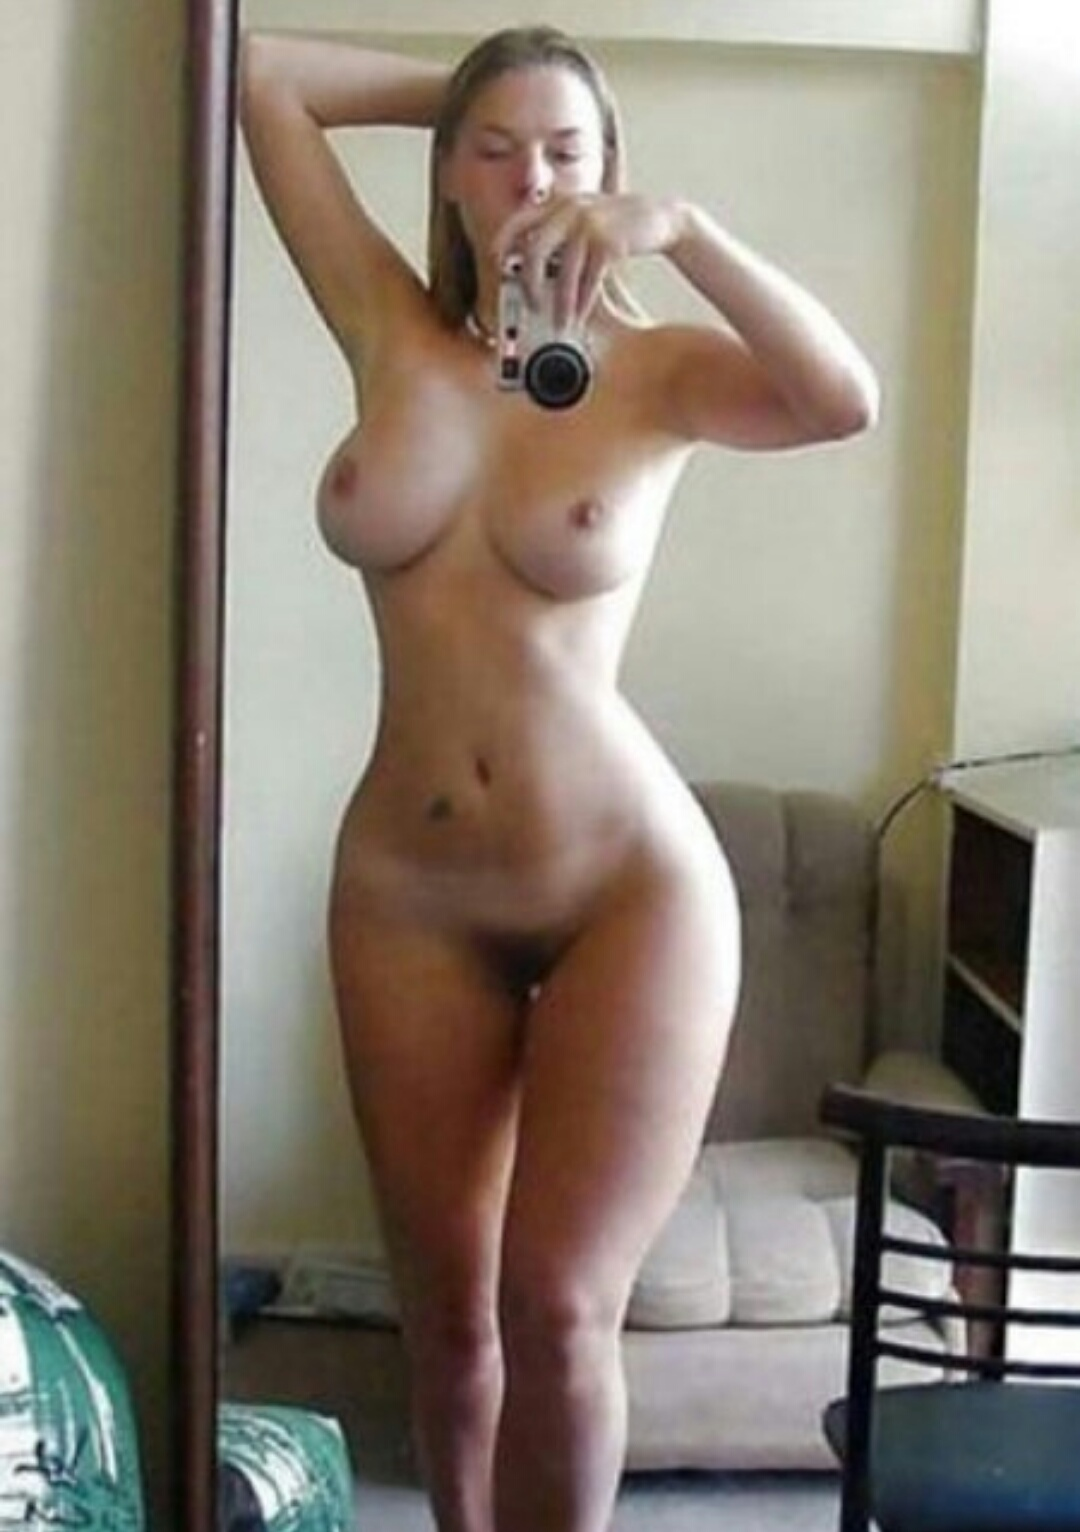 Rather good Big girls nude selfies consider, that